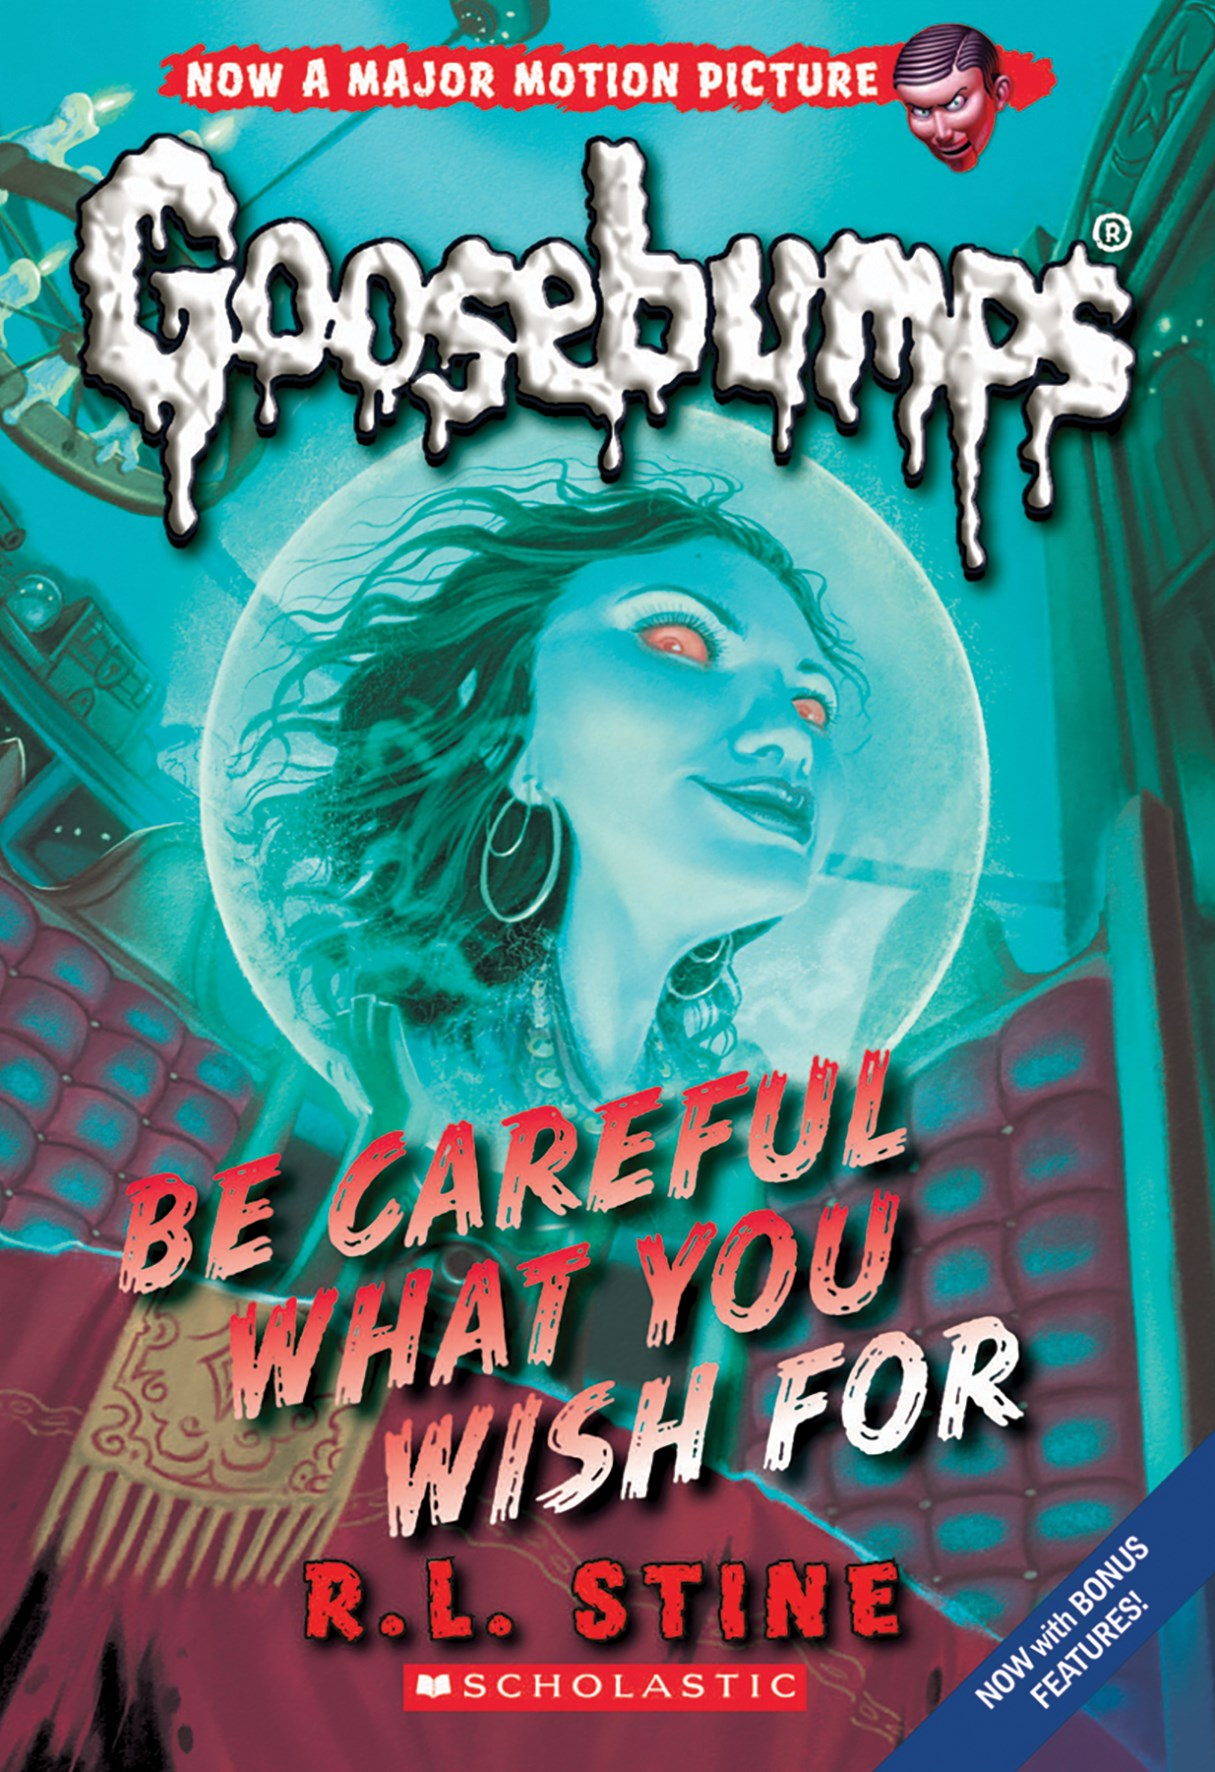 Be Careful What You Wish For (Goosebumps Classic Book 7)